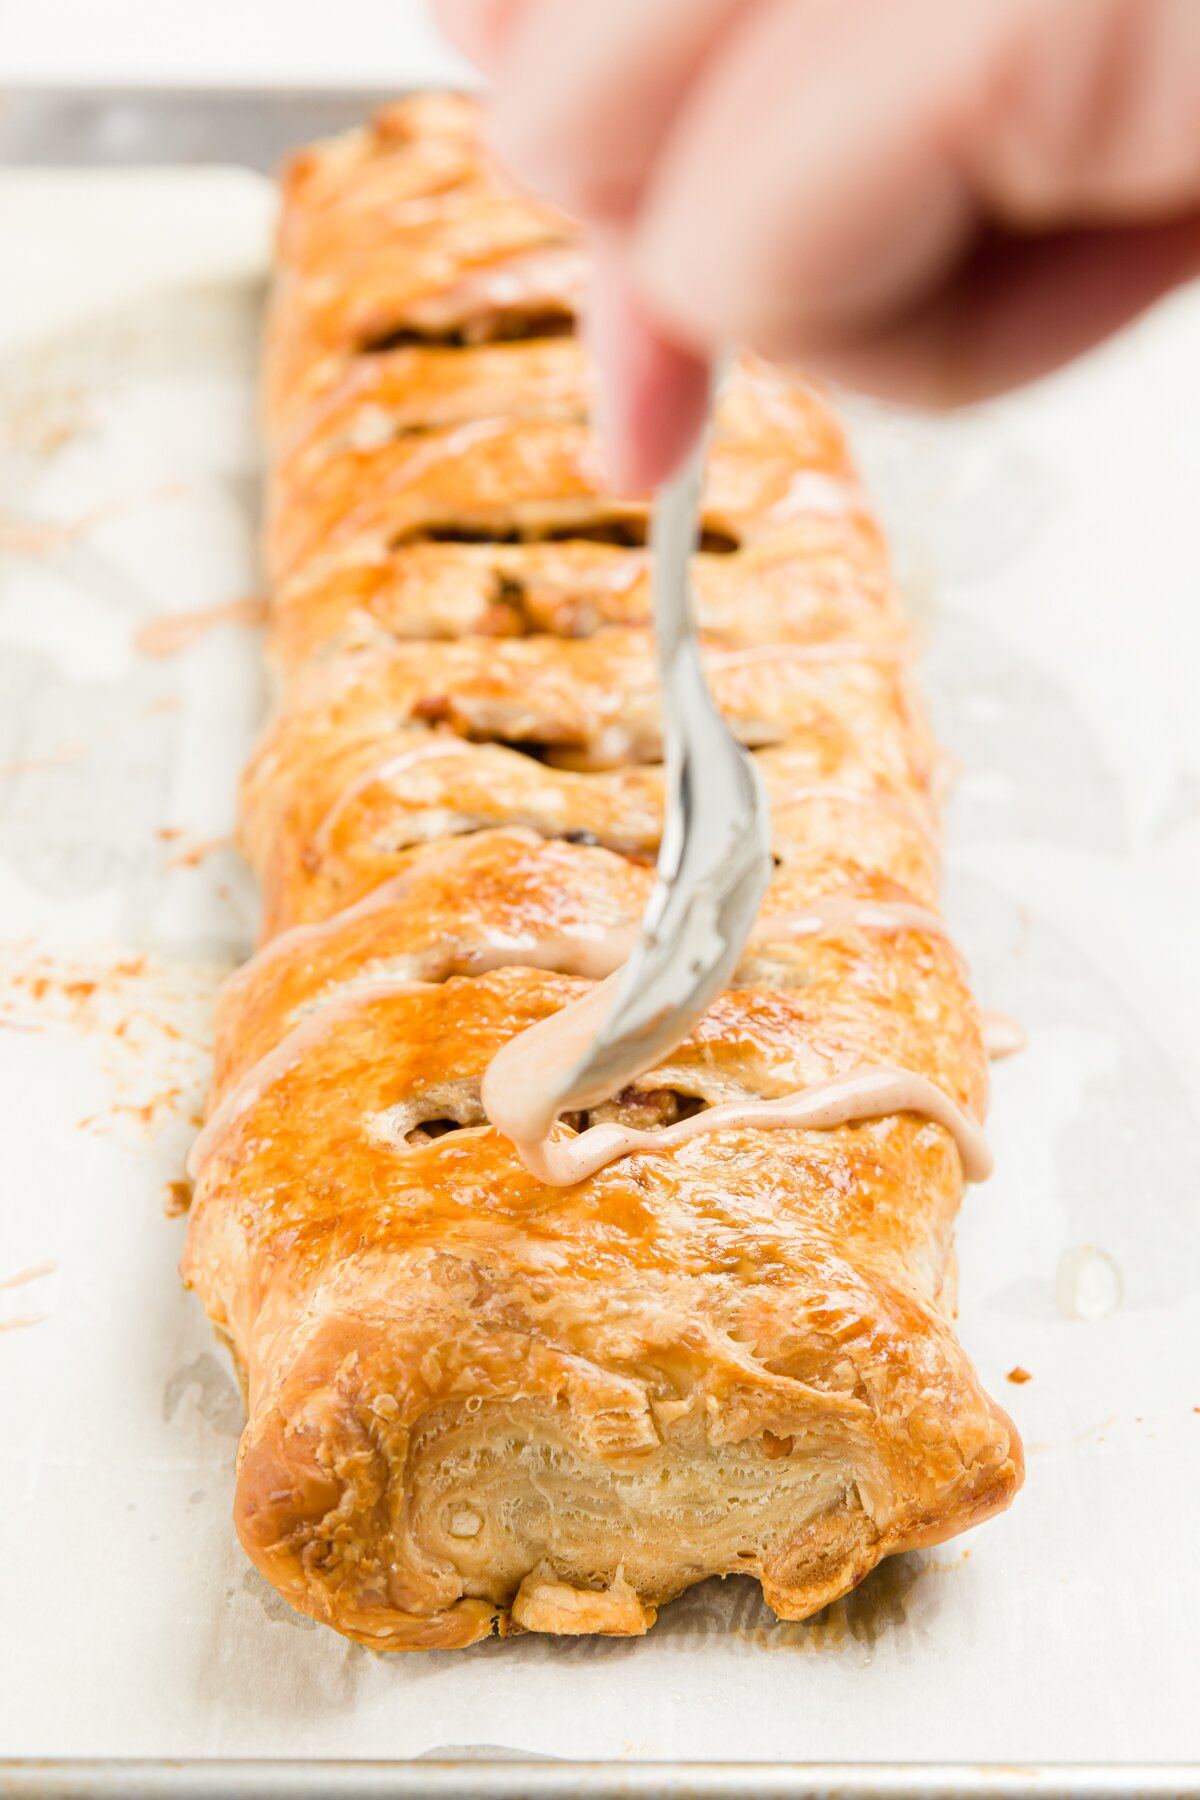 Drizzling glaze on strudel